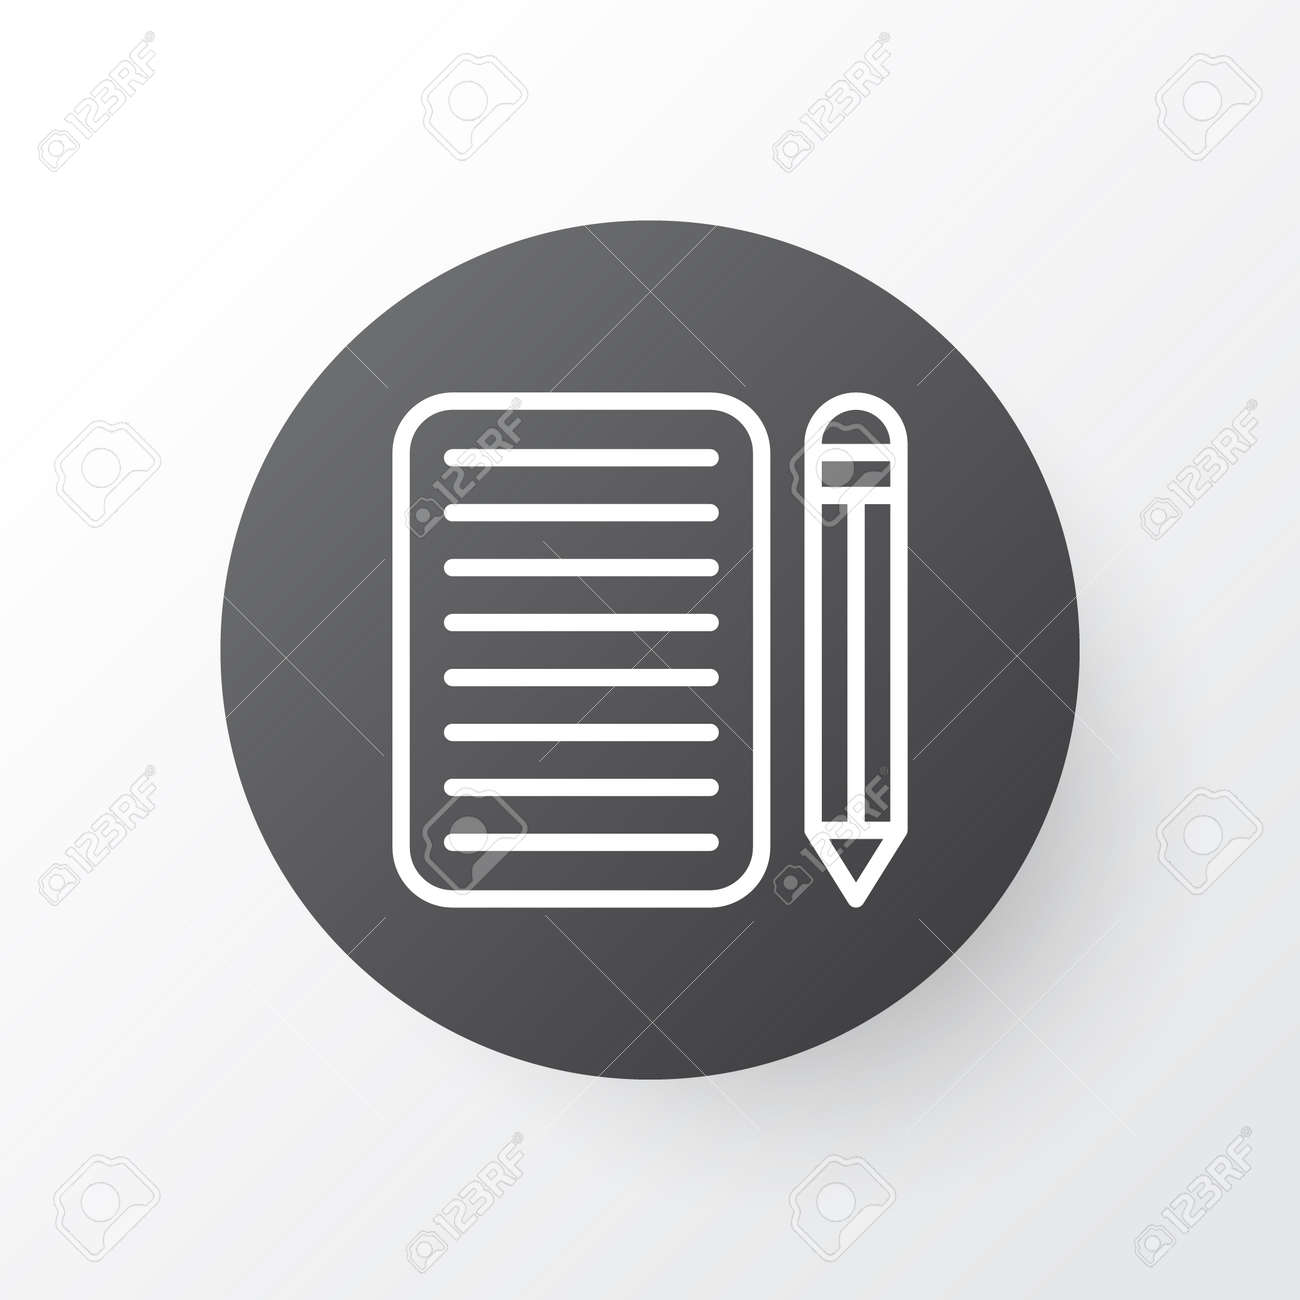 essay writing icon symbol premium quality isolated home work  essay writing icon symbol premium quality isolated home work element in trendy style stock